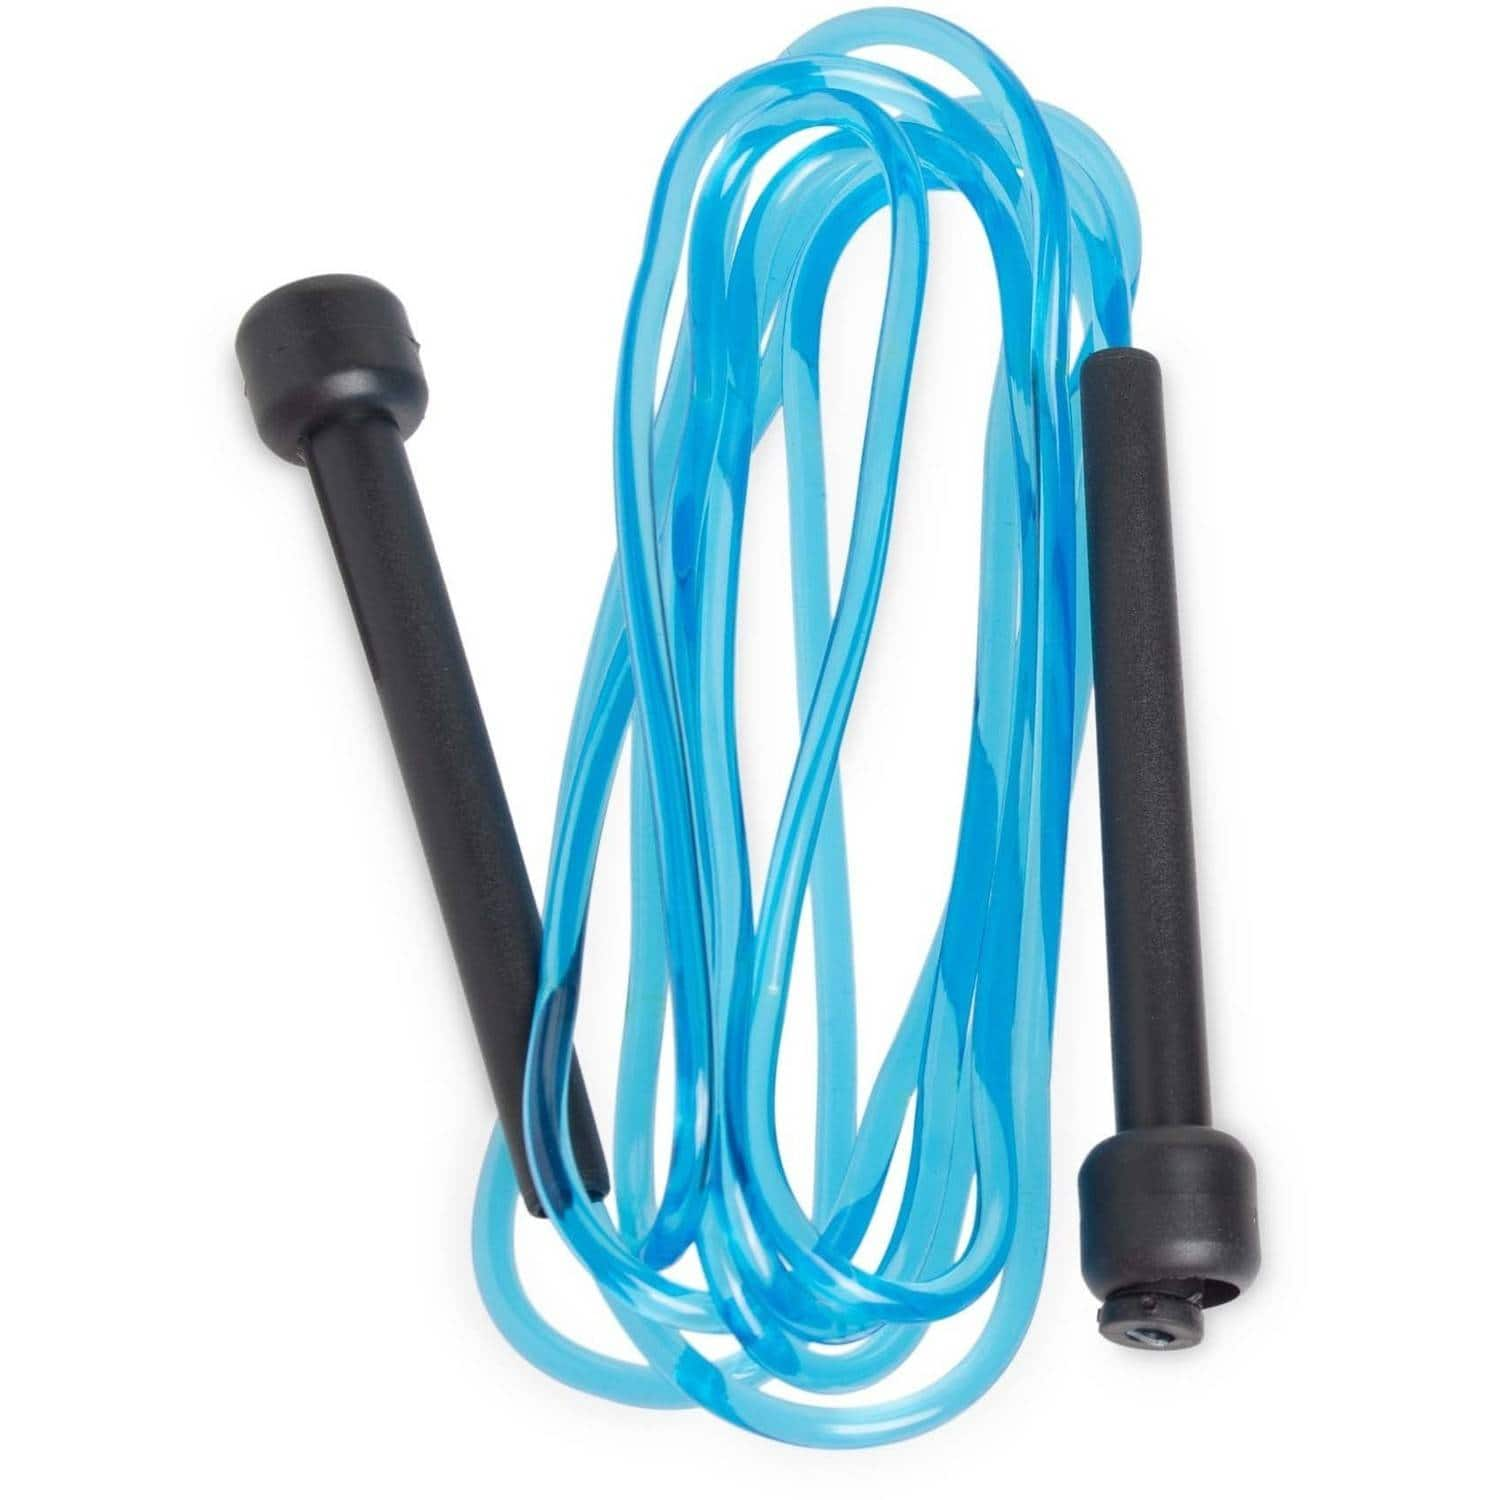 CAP Speed Rope $1.25 + Free Shipping